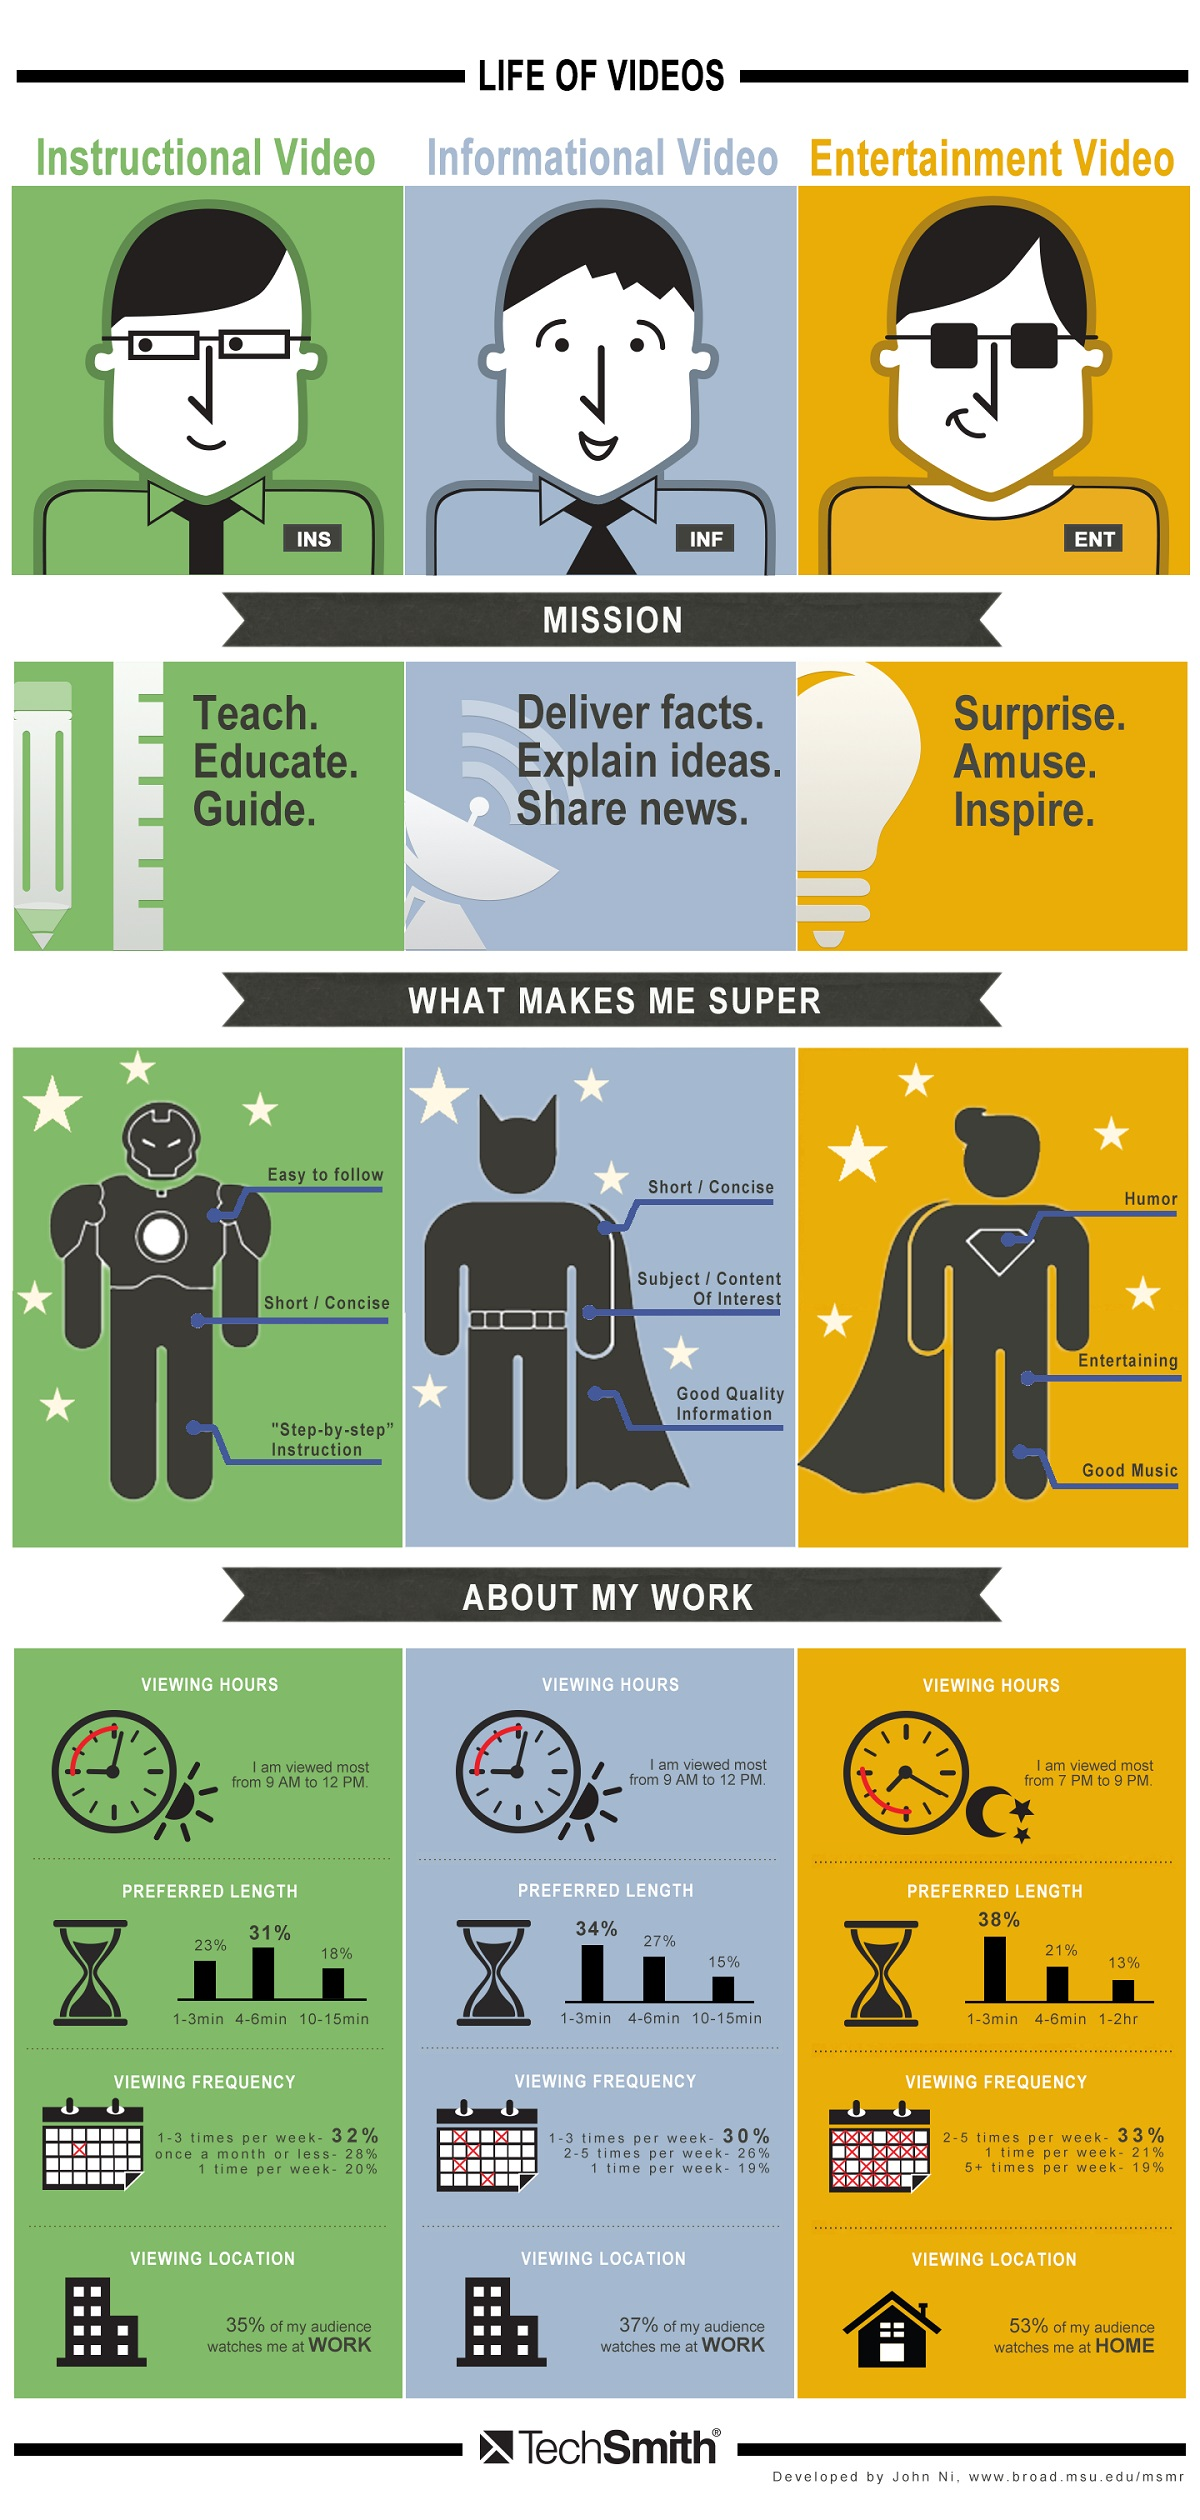 life-of-video-tech-smith-infographic